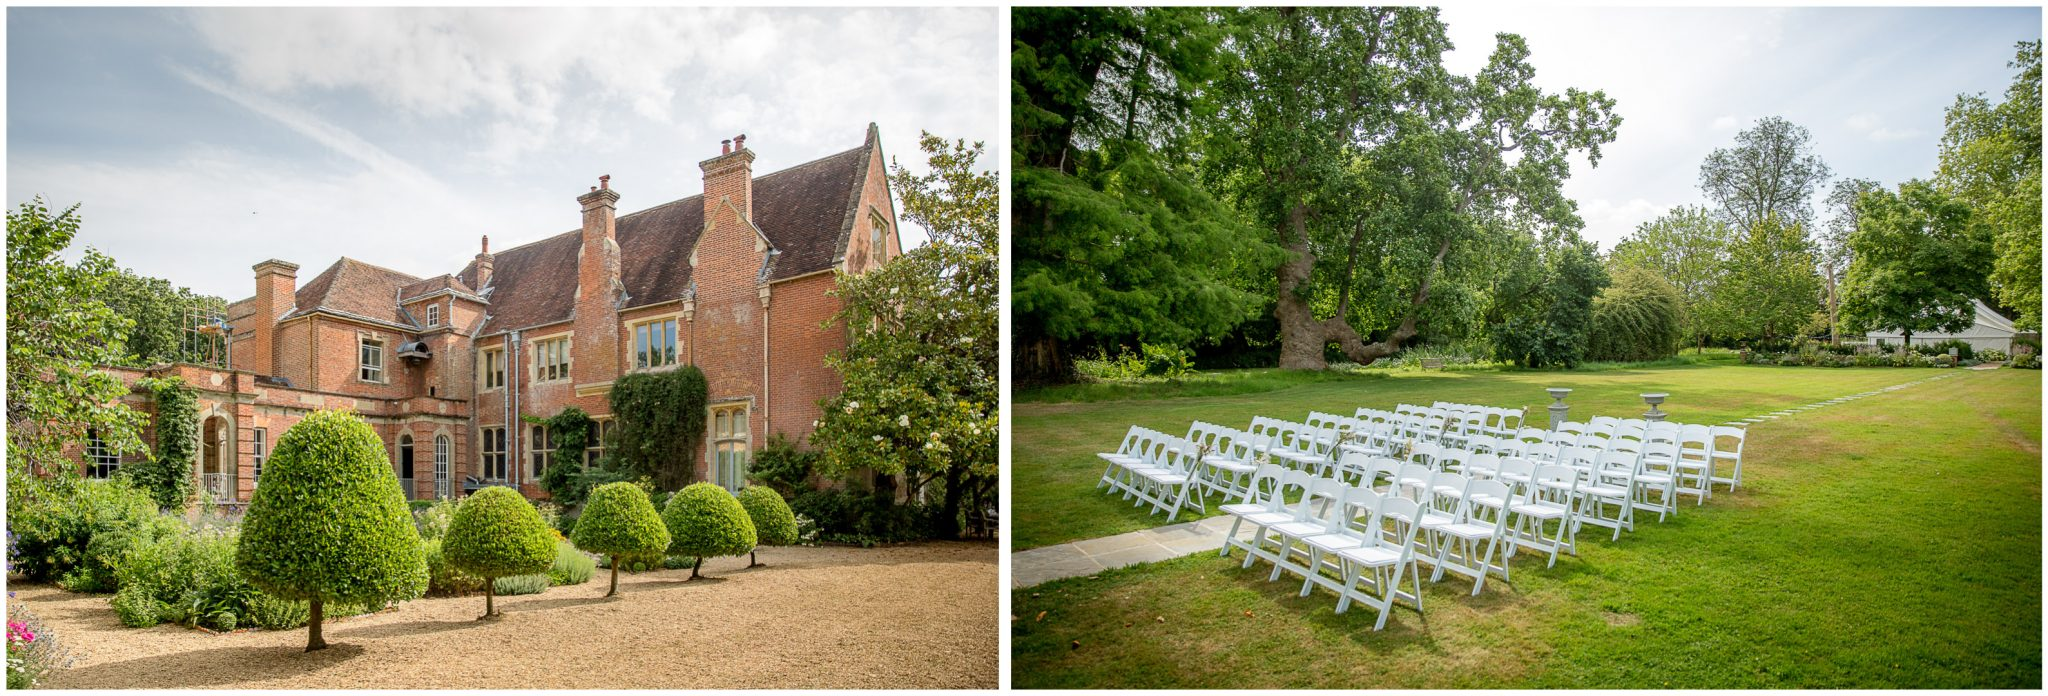 The rear lawn set up for an outdoor wedding ceremony